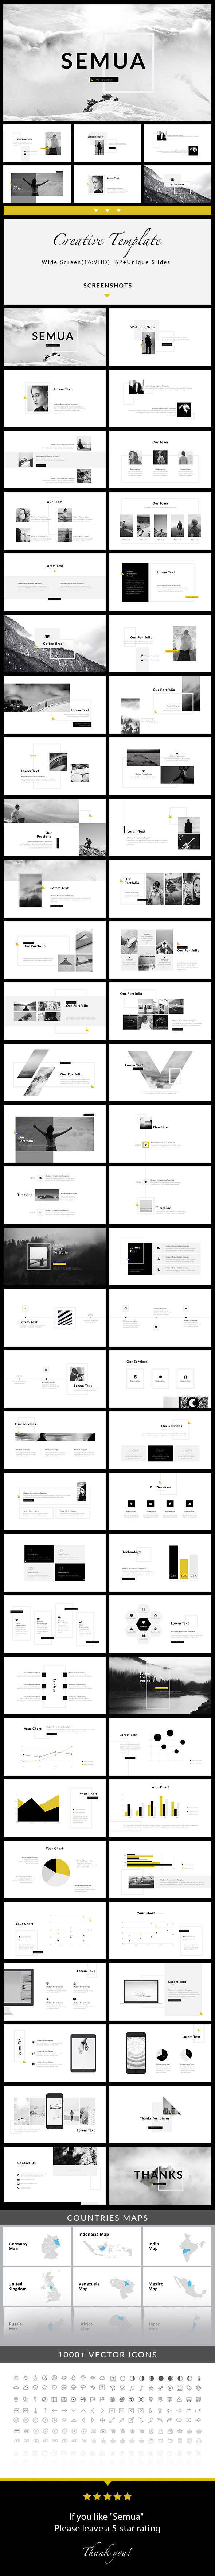 Semua - Keynote Presentation Template - Creative Keynote Templates